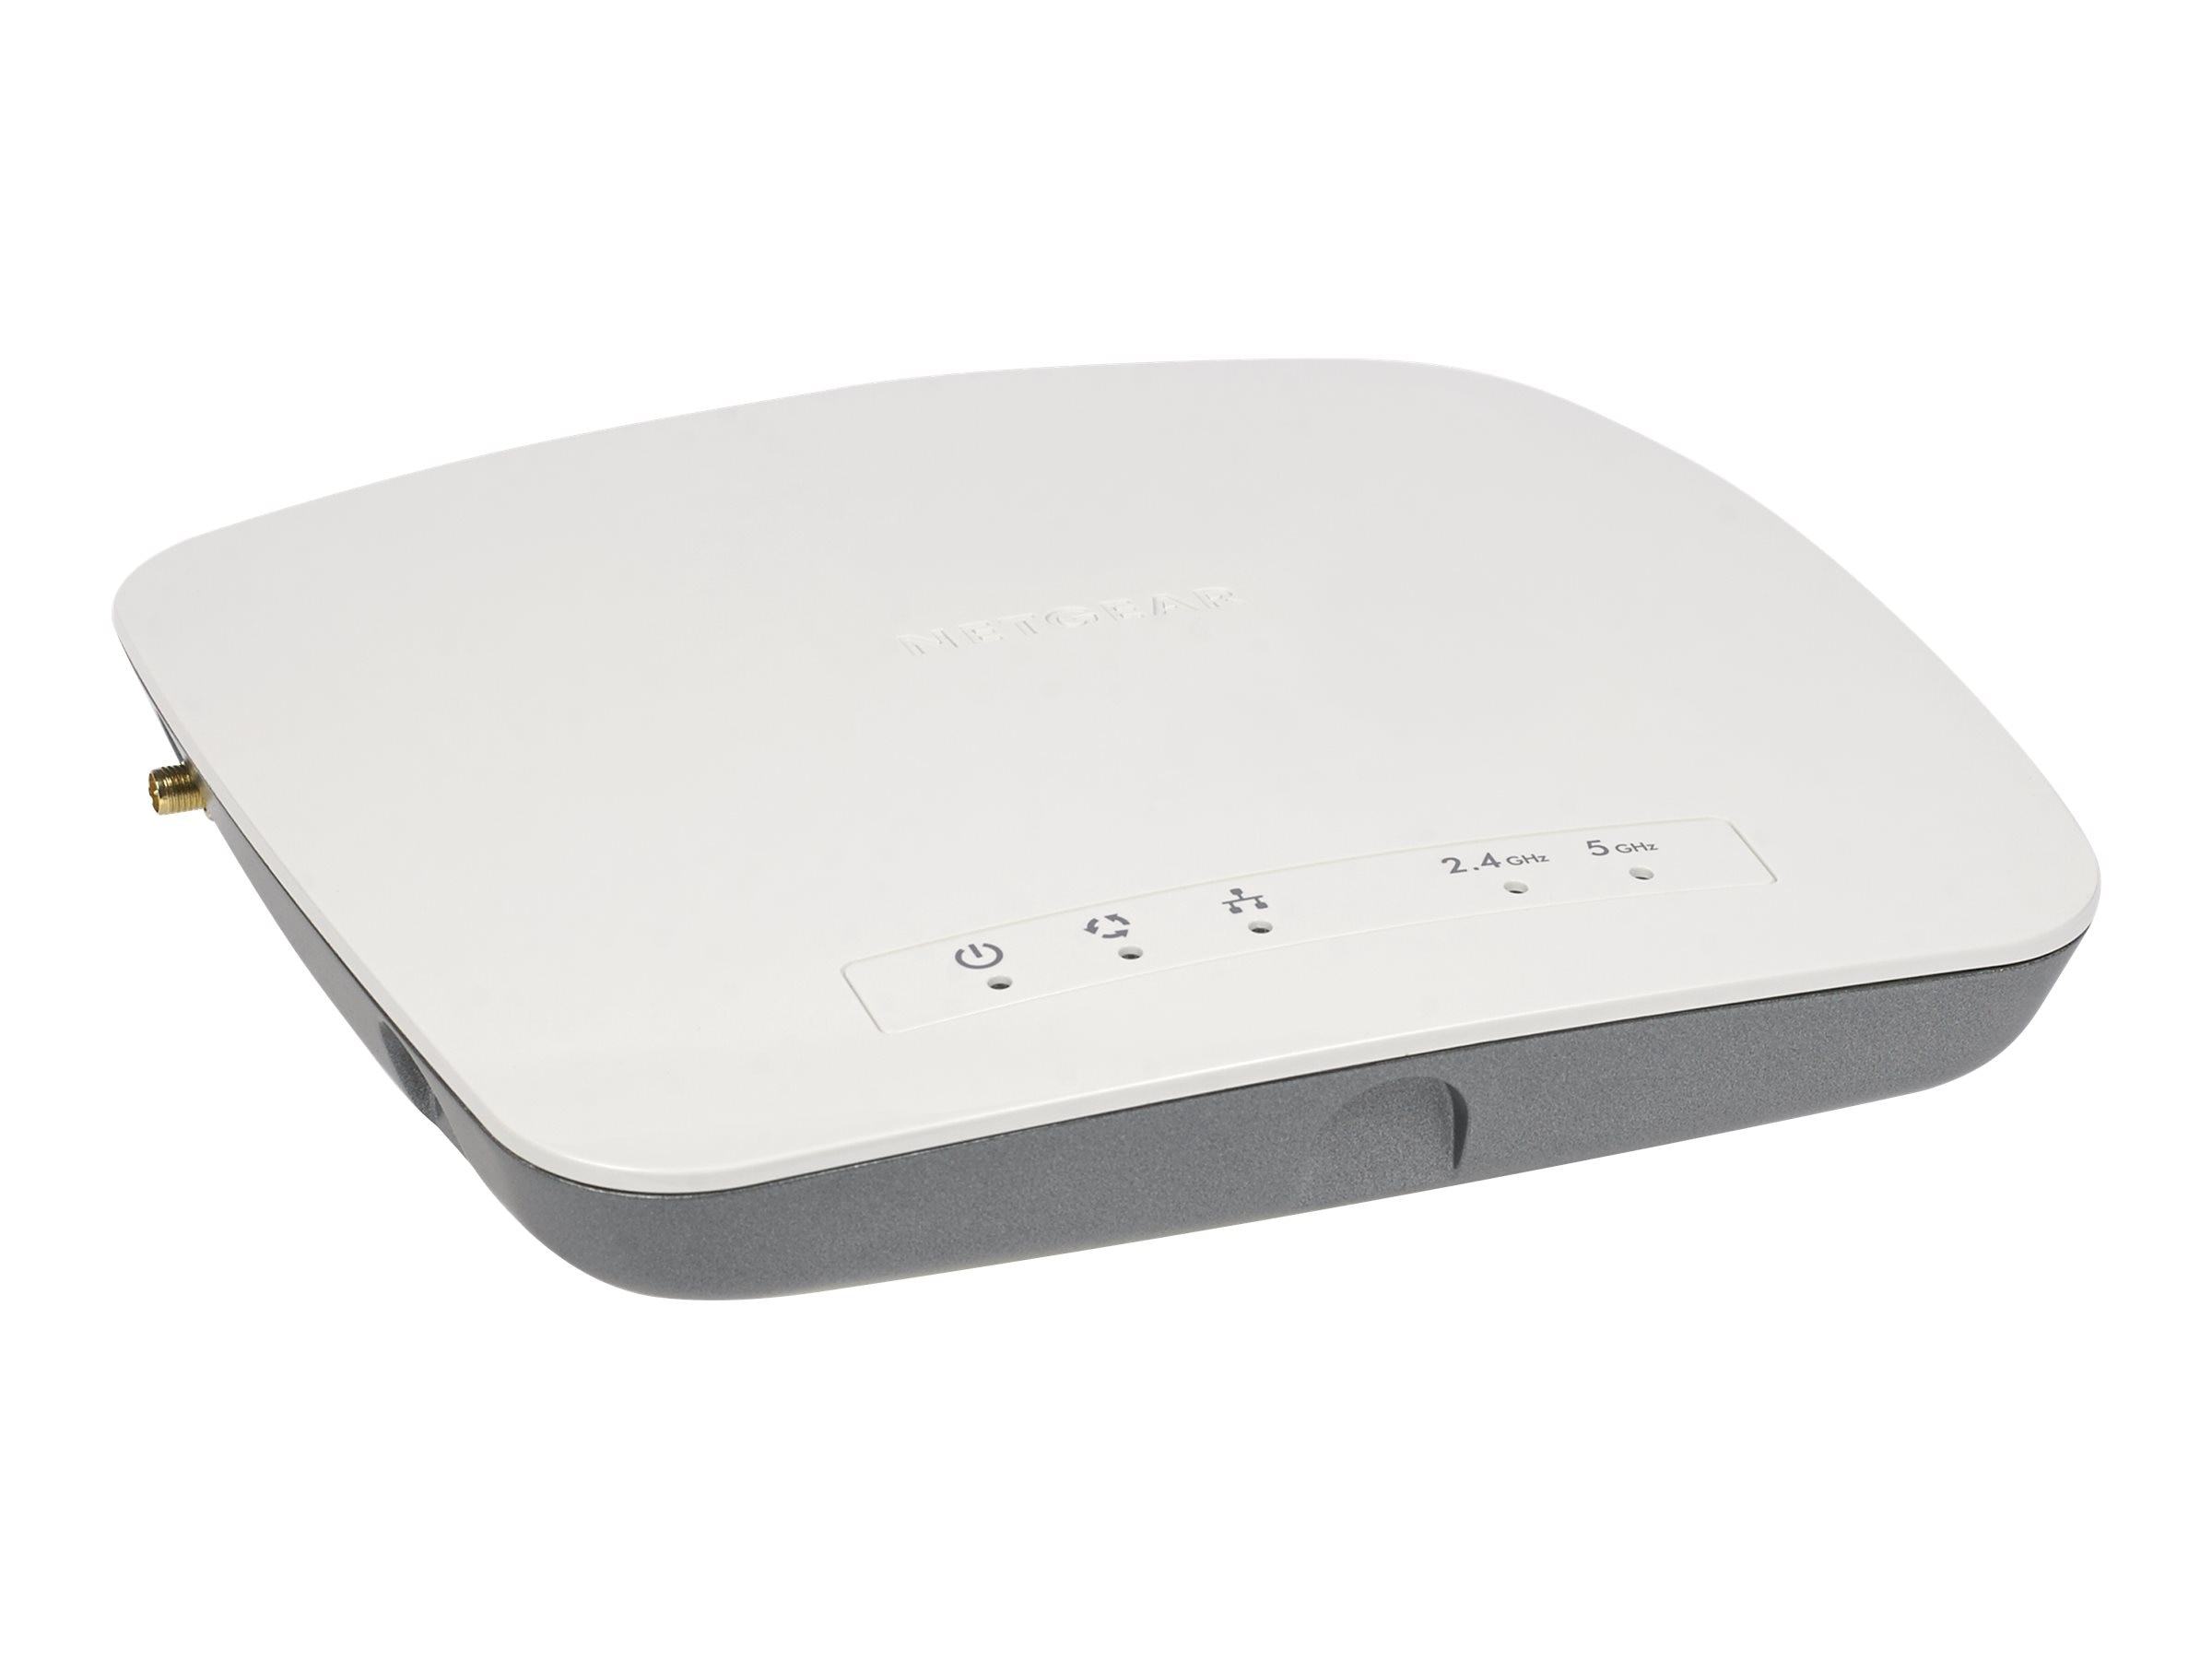 Netgear ProSAFE Business 2 x 2 Dual Band Wireless-AC Access Point, WAC720-100NAS, 30734582, Wireless Access Points & Bridges